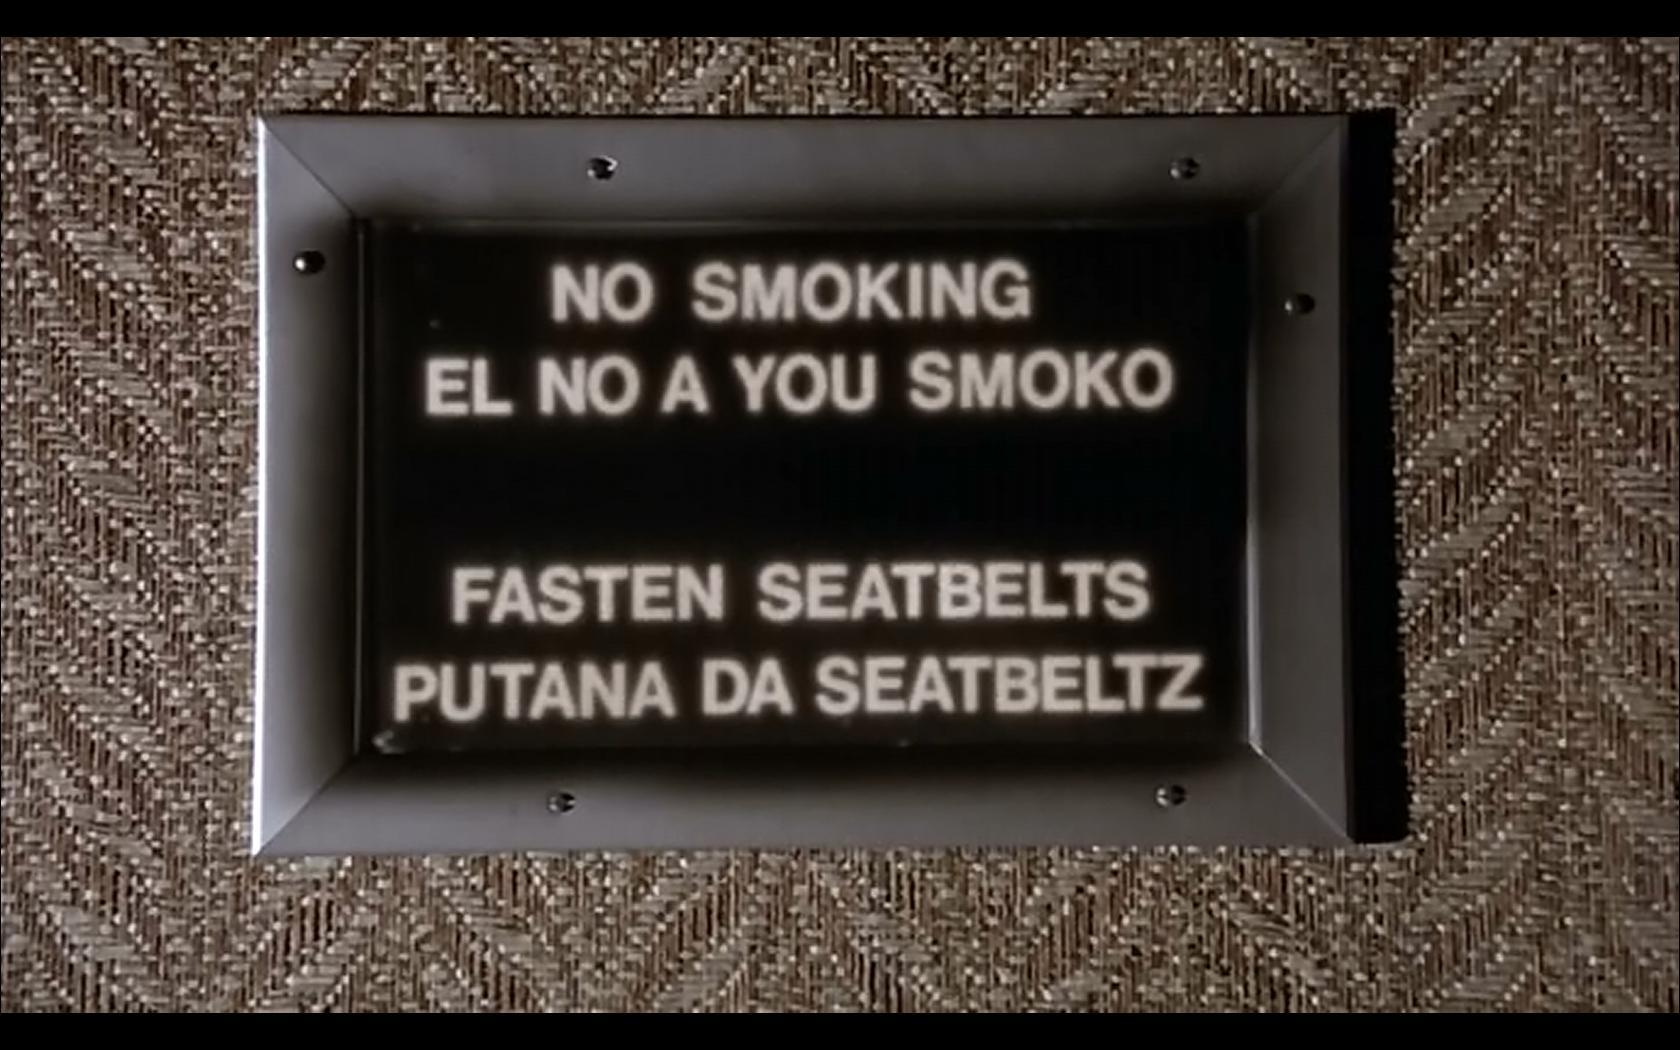 Translated Sign From The Movie Airplane Meme By Packersrock85